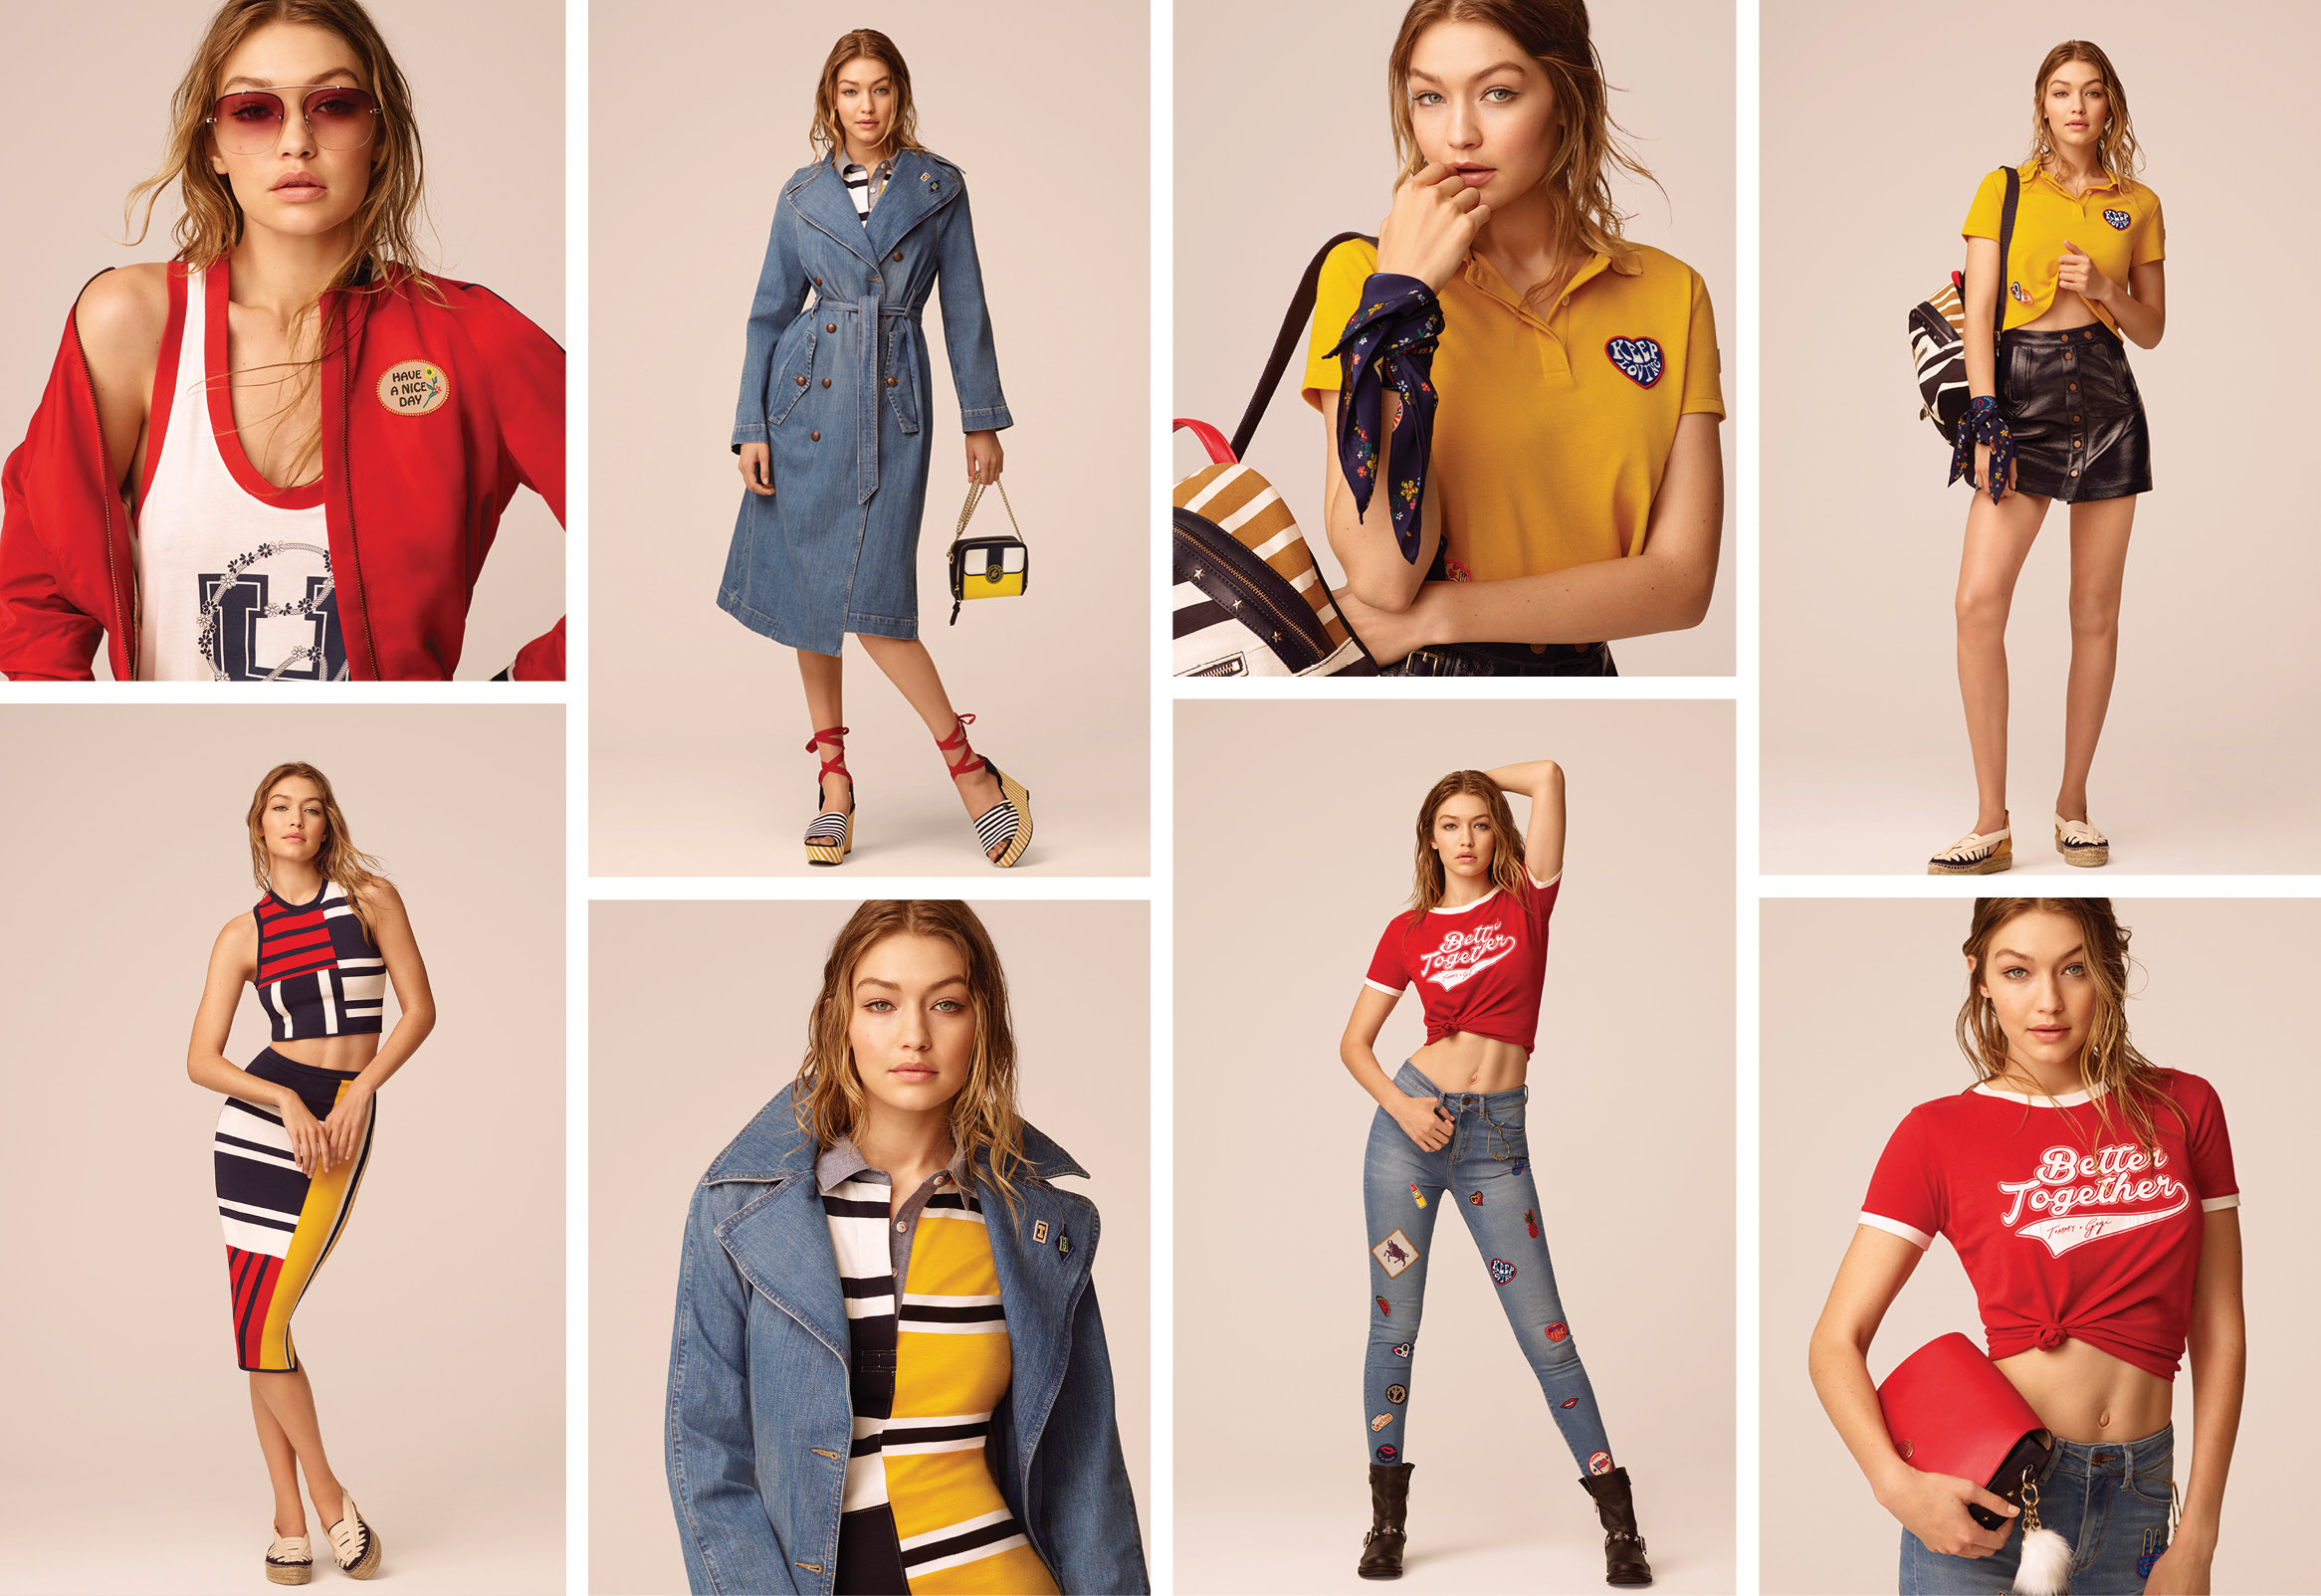 98742830b4a6 Gigi Hadid looks stunning in new Tommy Hilfiger Collection ...